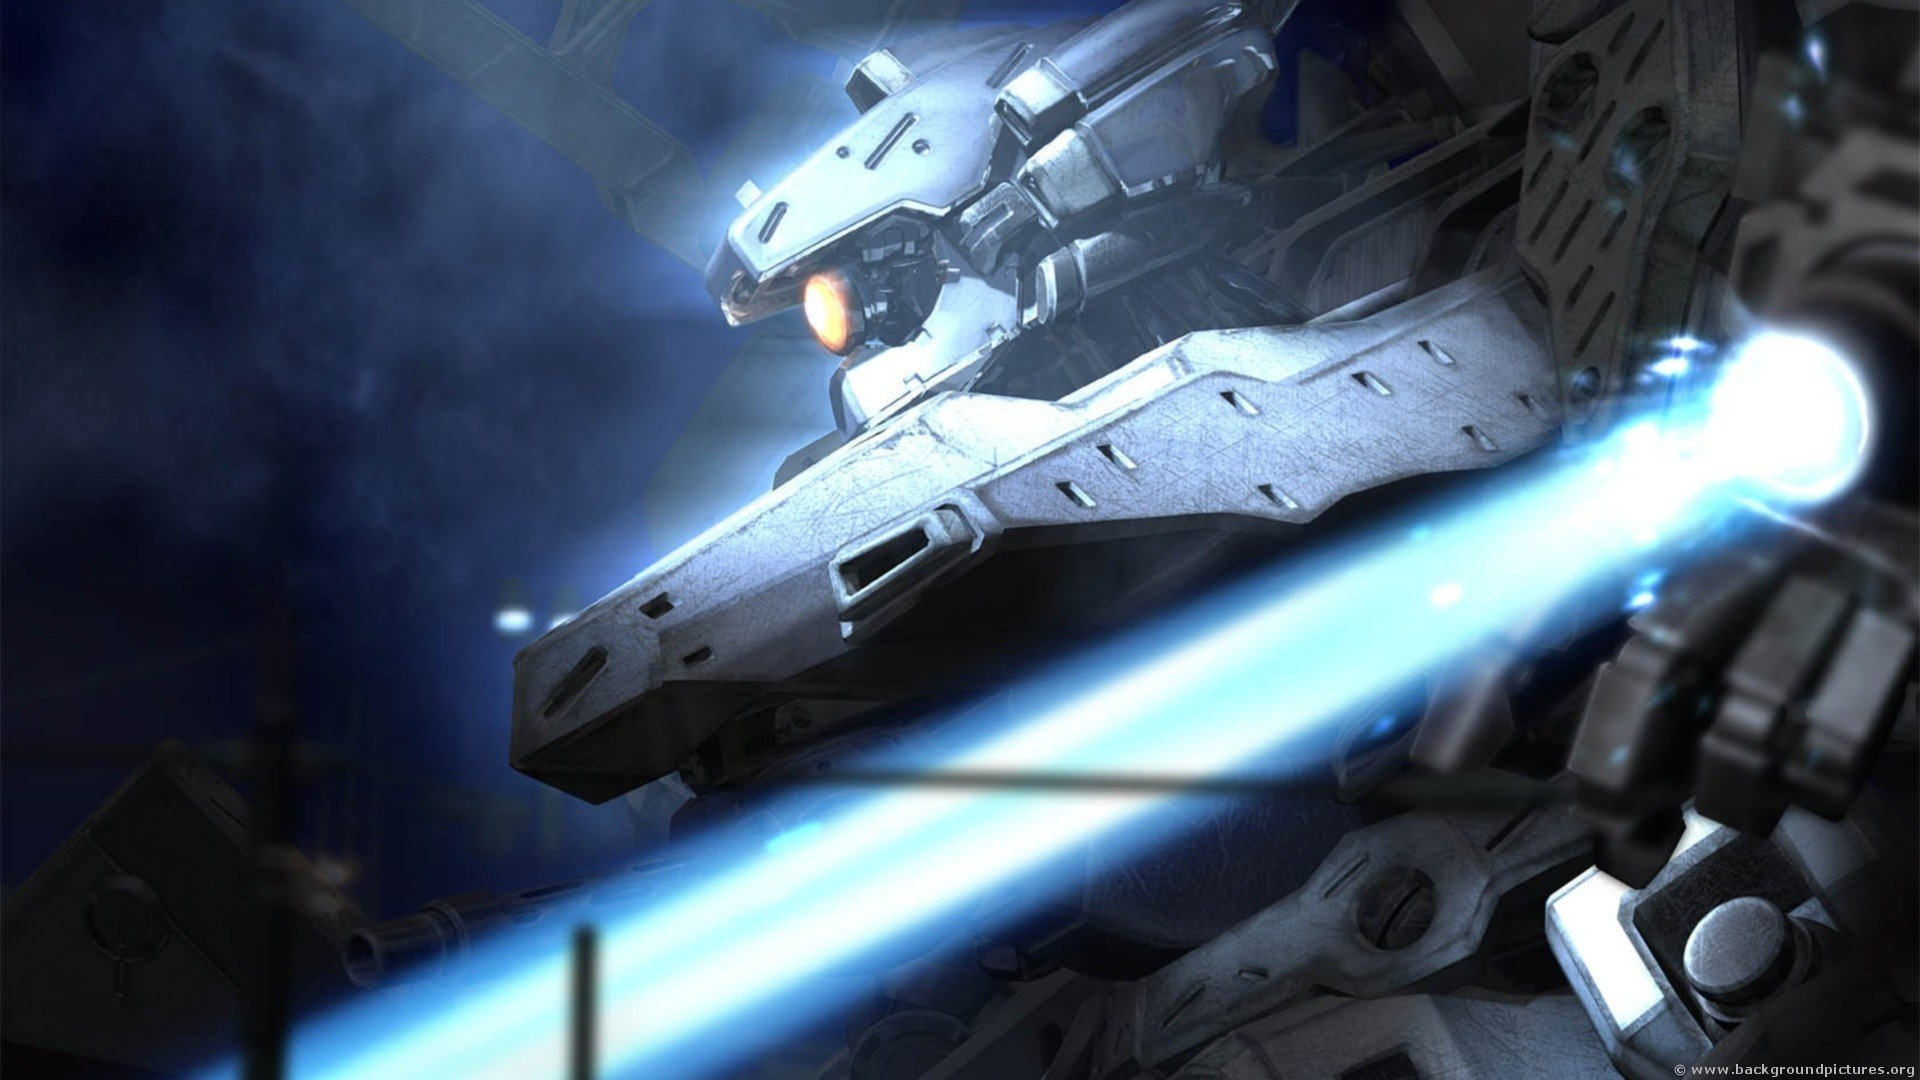 Get Armored Core Wallpaper 1920X1080 PNG